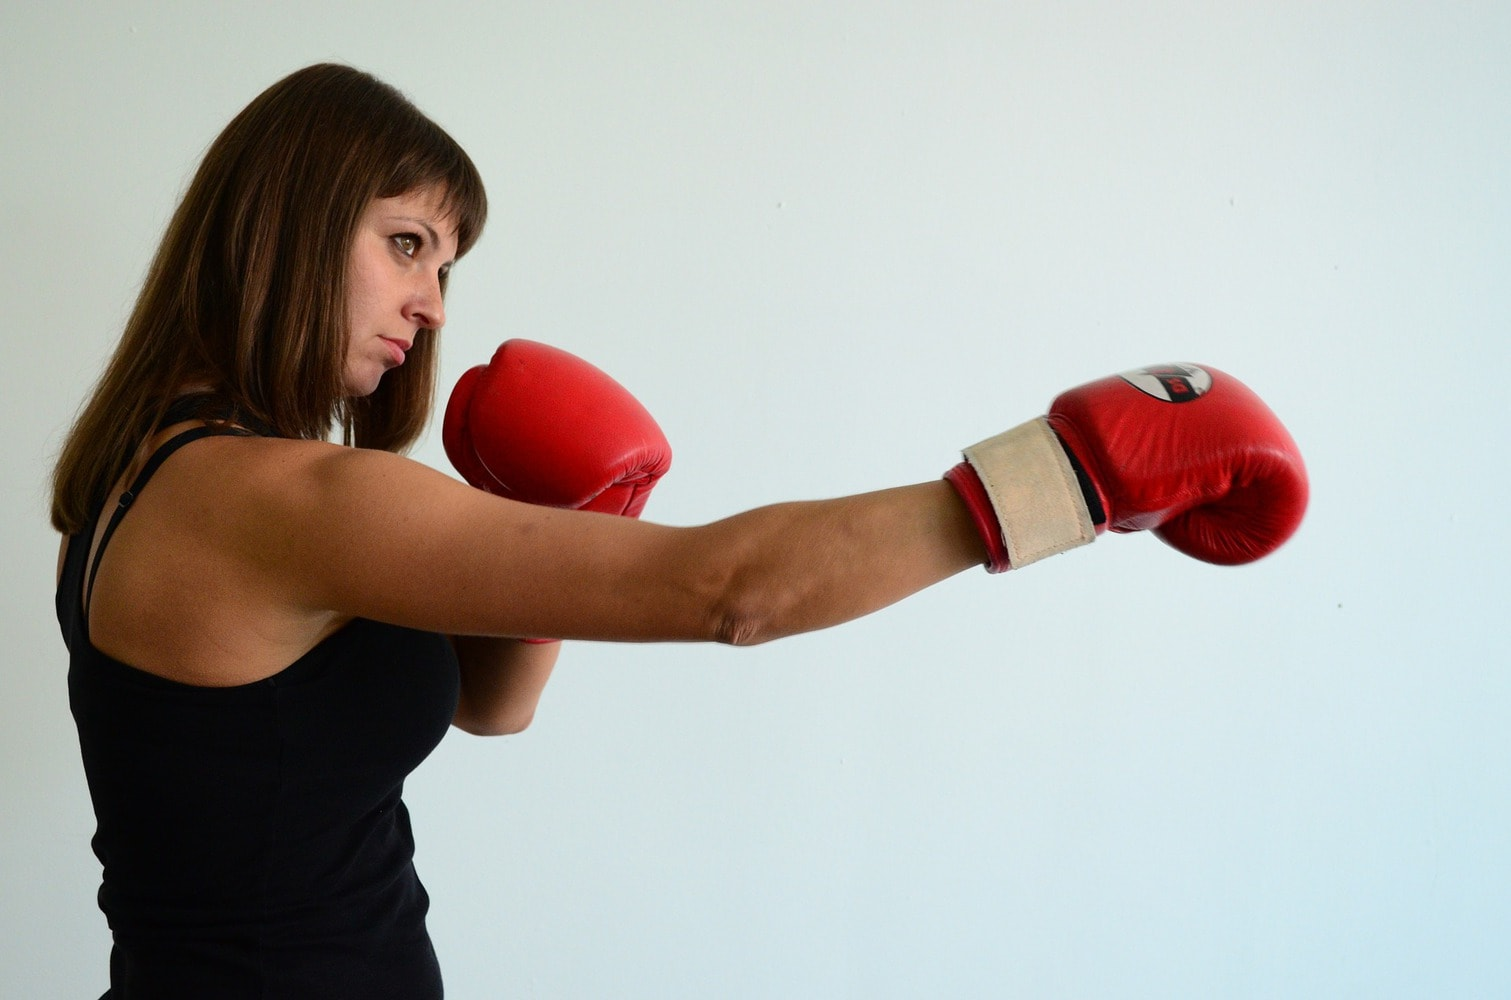 female boxer on a punching pose